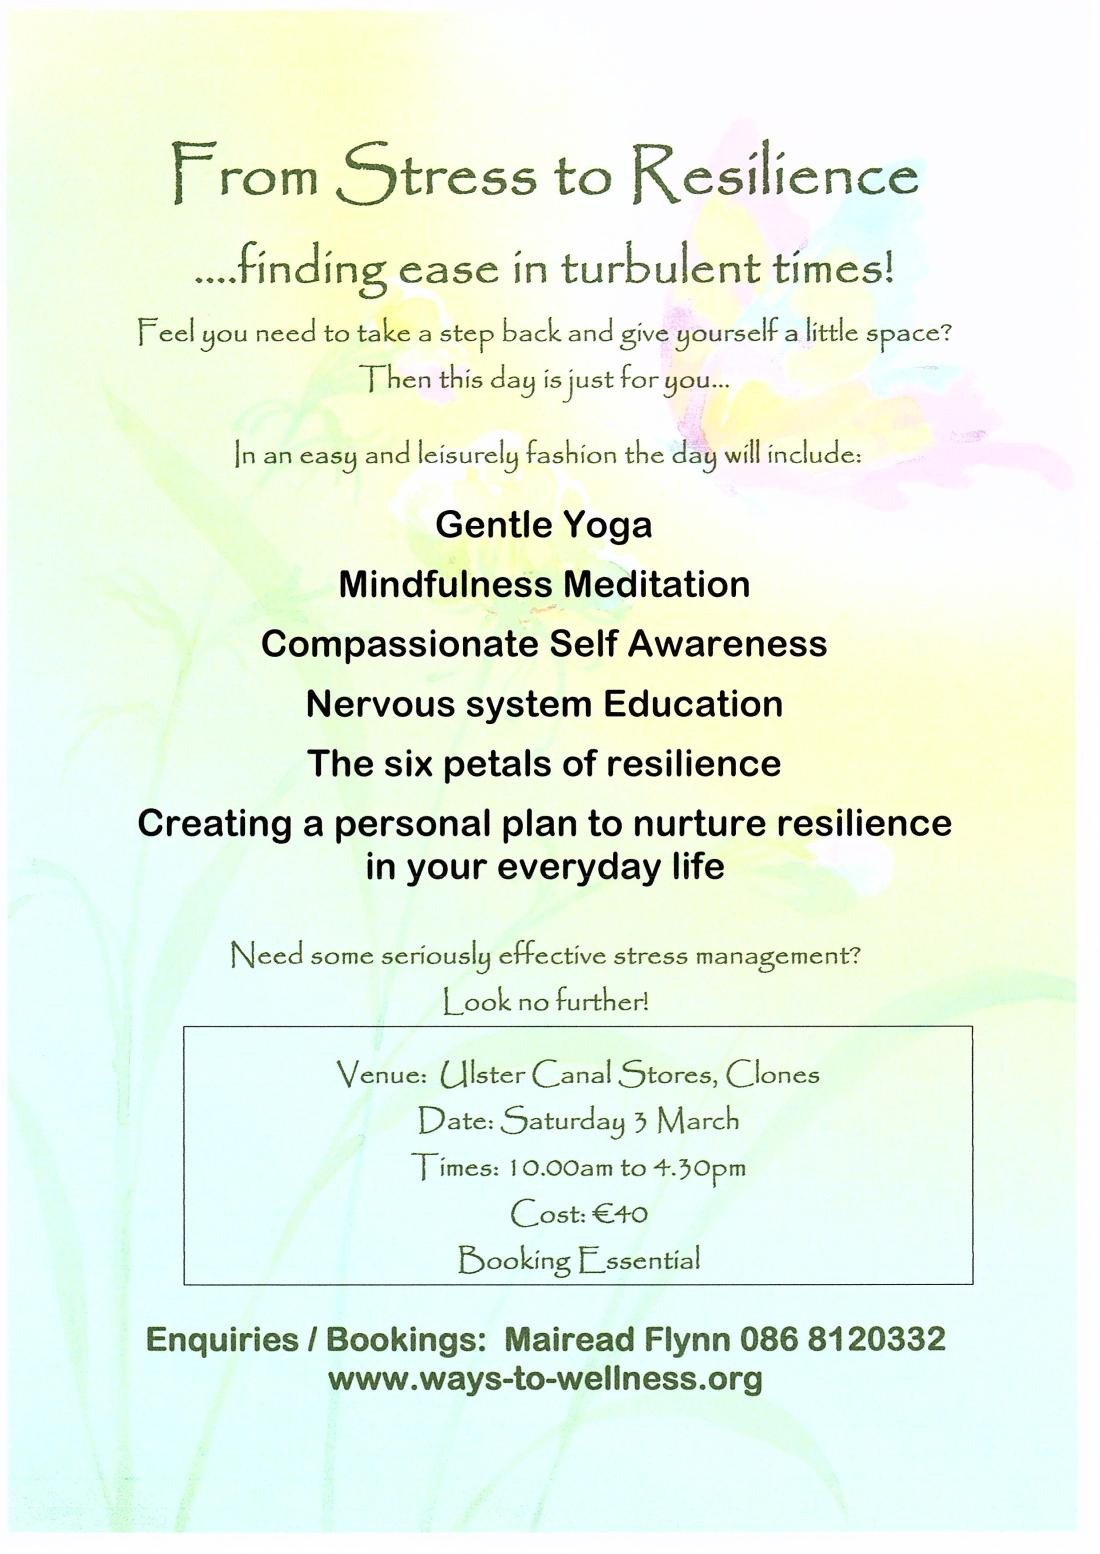 From Stress to Resilience March 18